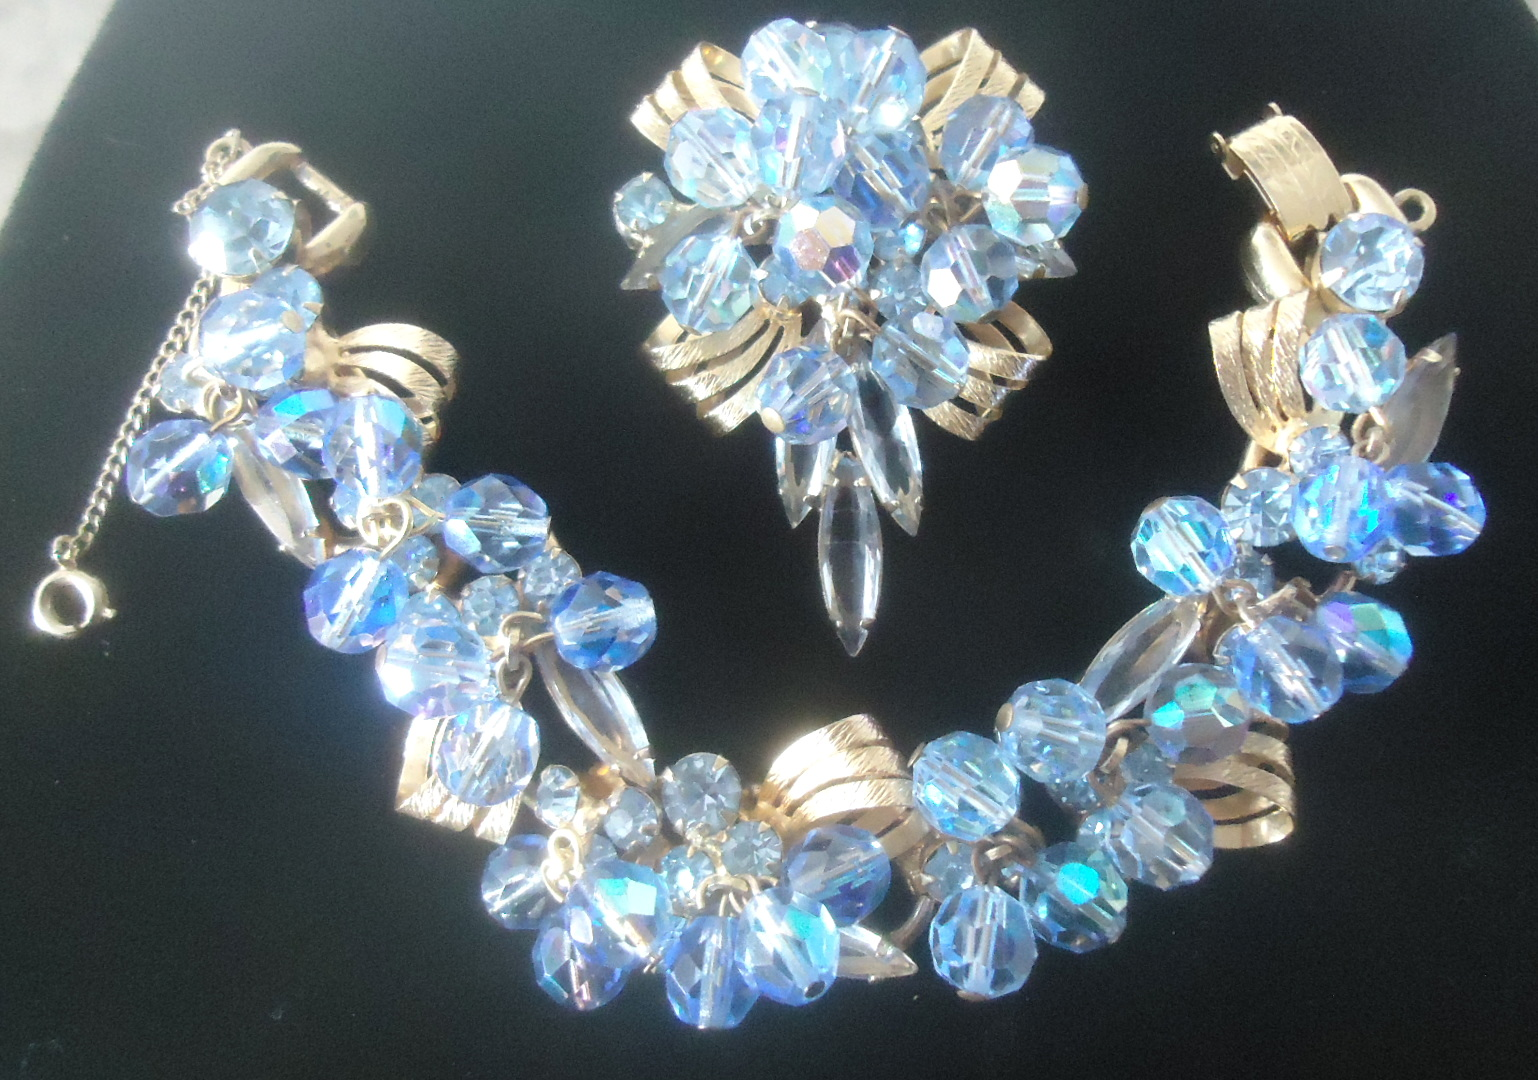 DeLizza and Elster a/k/a Juliana Furled Ribbon Finding Brilliant Blue Cha Cha Dangle Bead Brooch Pendant and Bracelet (Bracelet is rare)